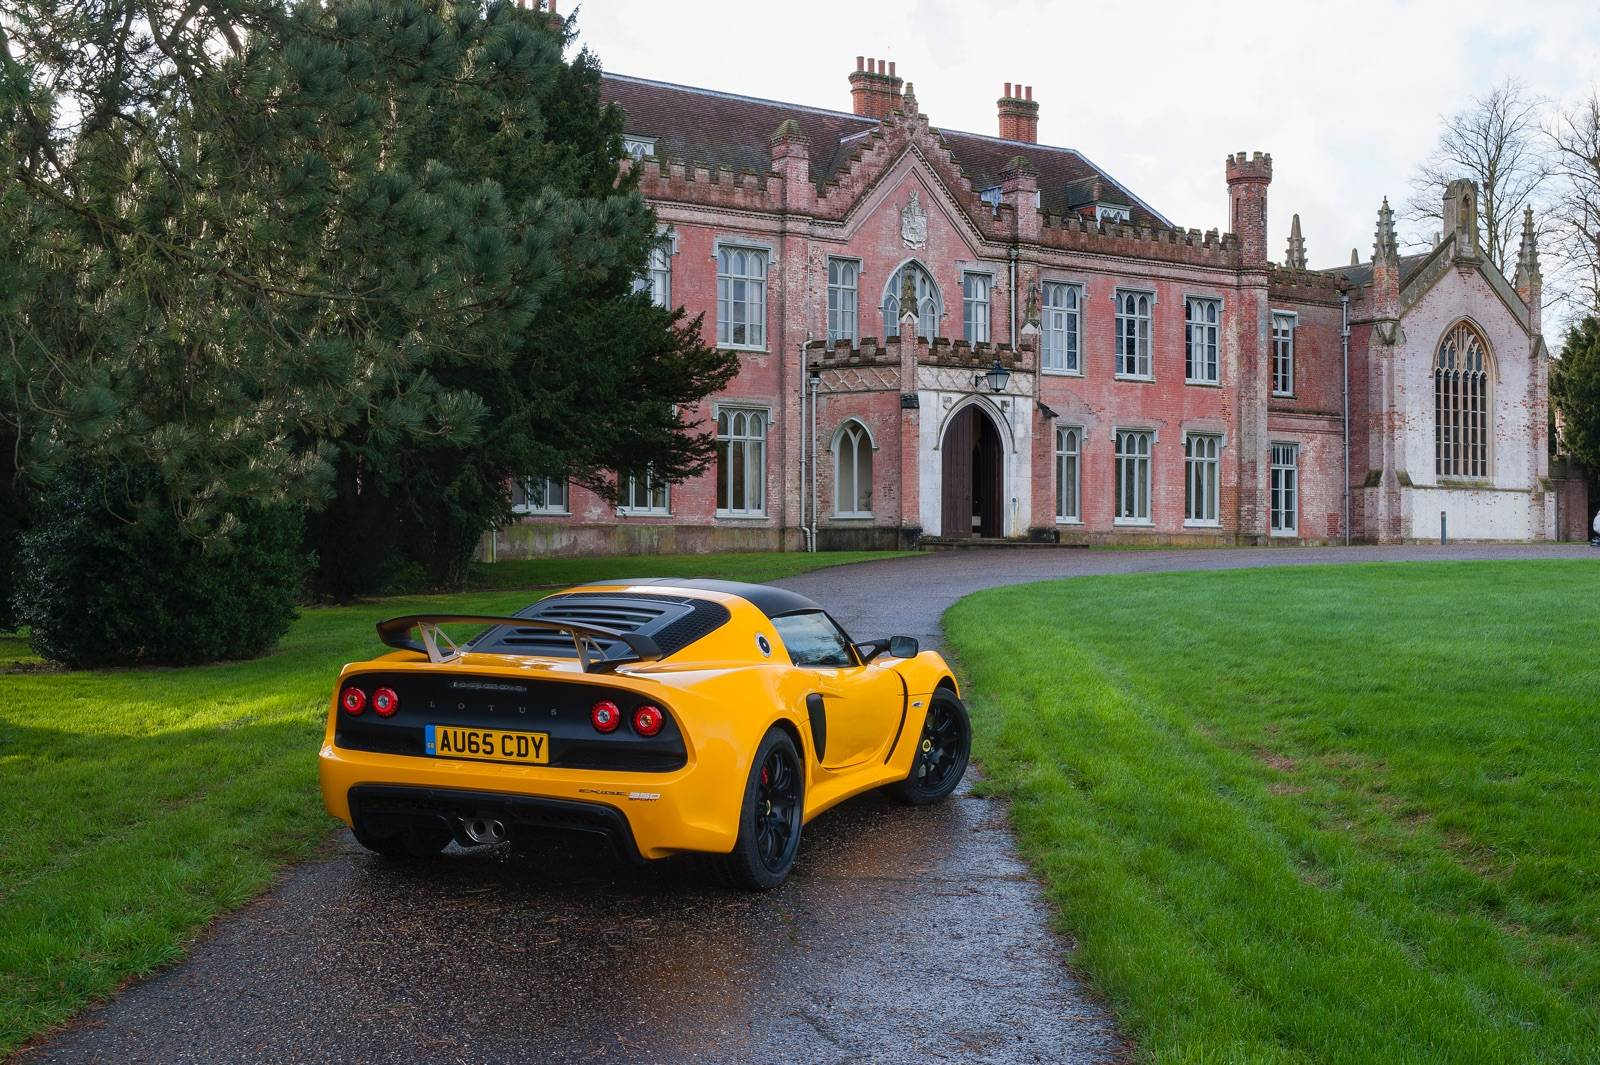 Third Generation Lotus Exige - This Is Lotus Exige Sport 350 2